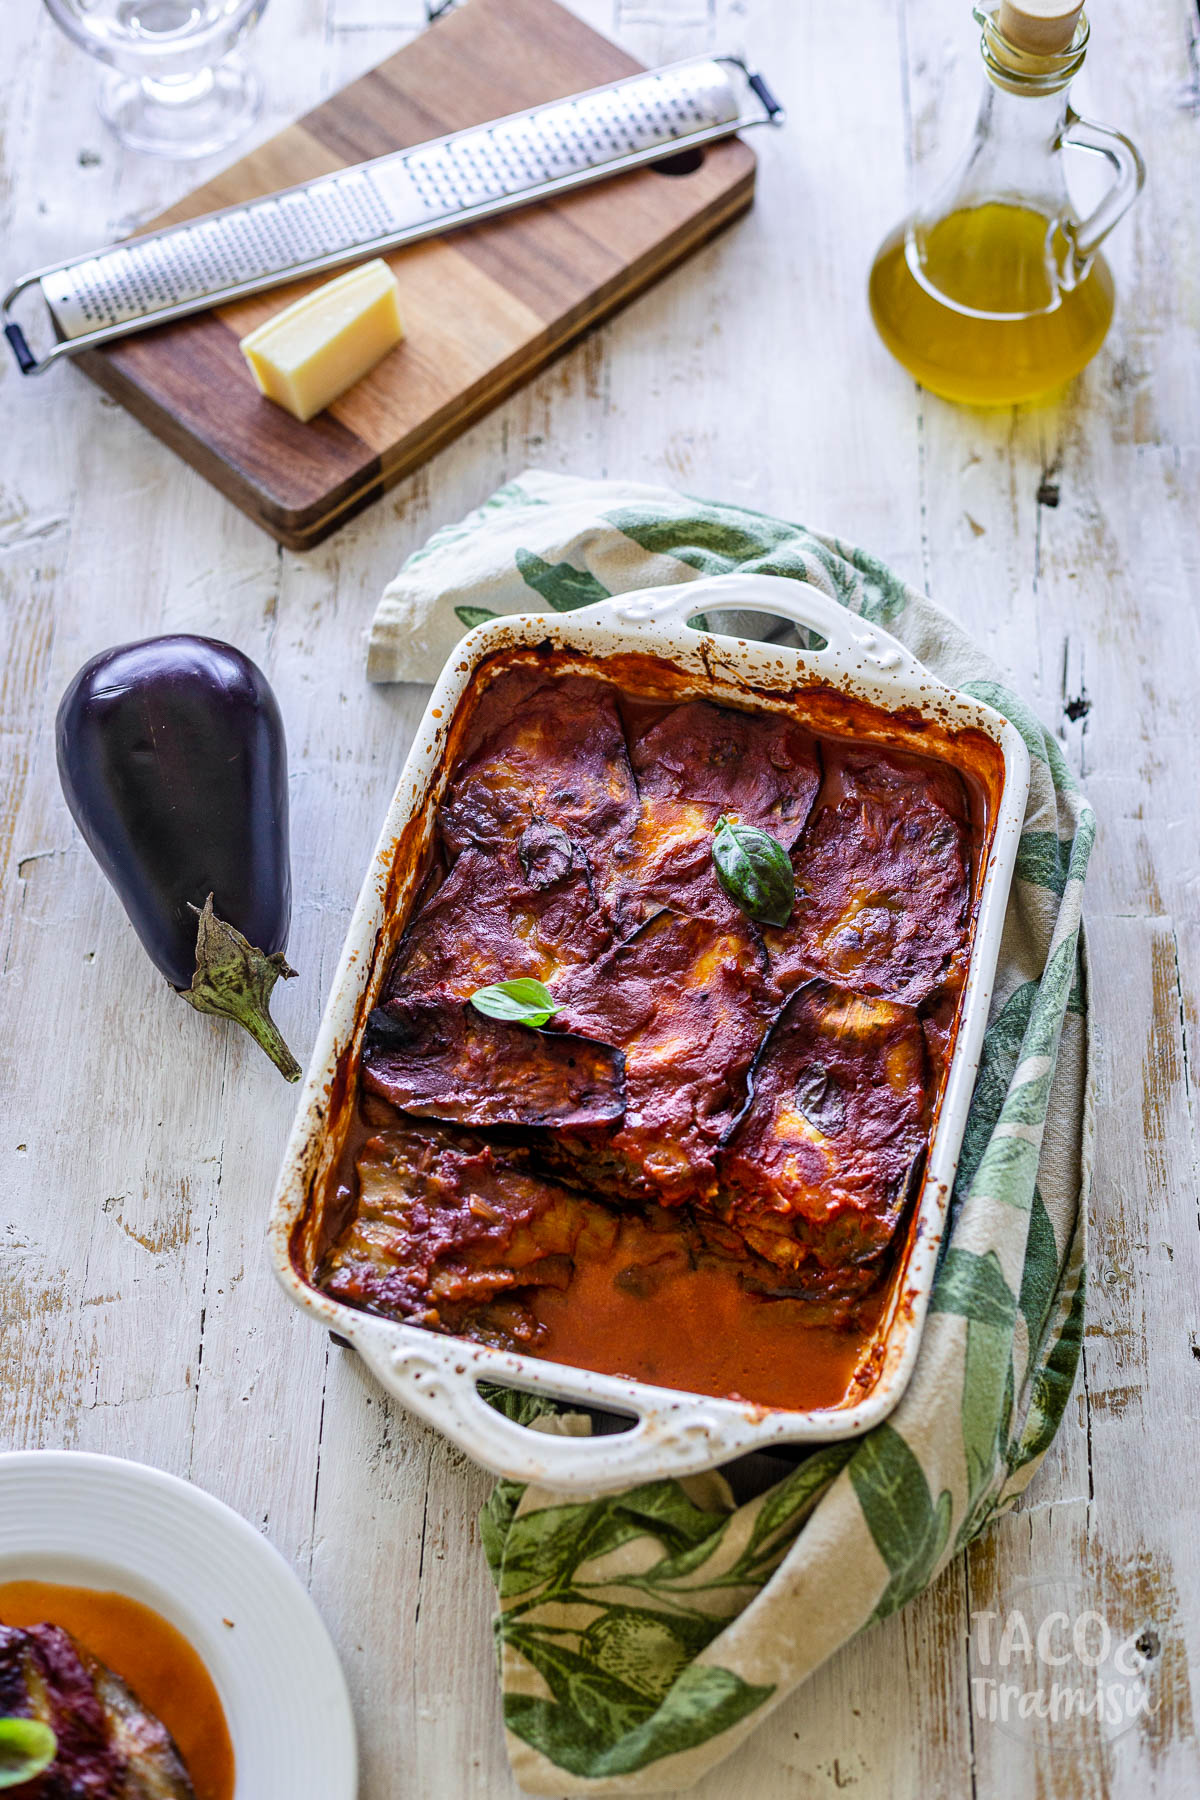 eggplant parmigiana on a white table with olive oil, an eggplant and parmesan aside